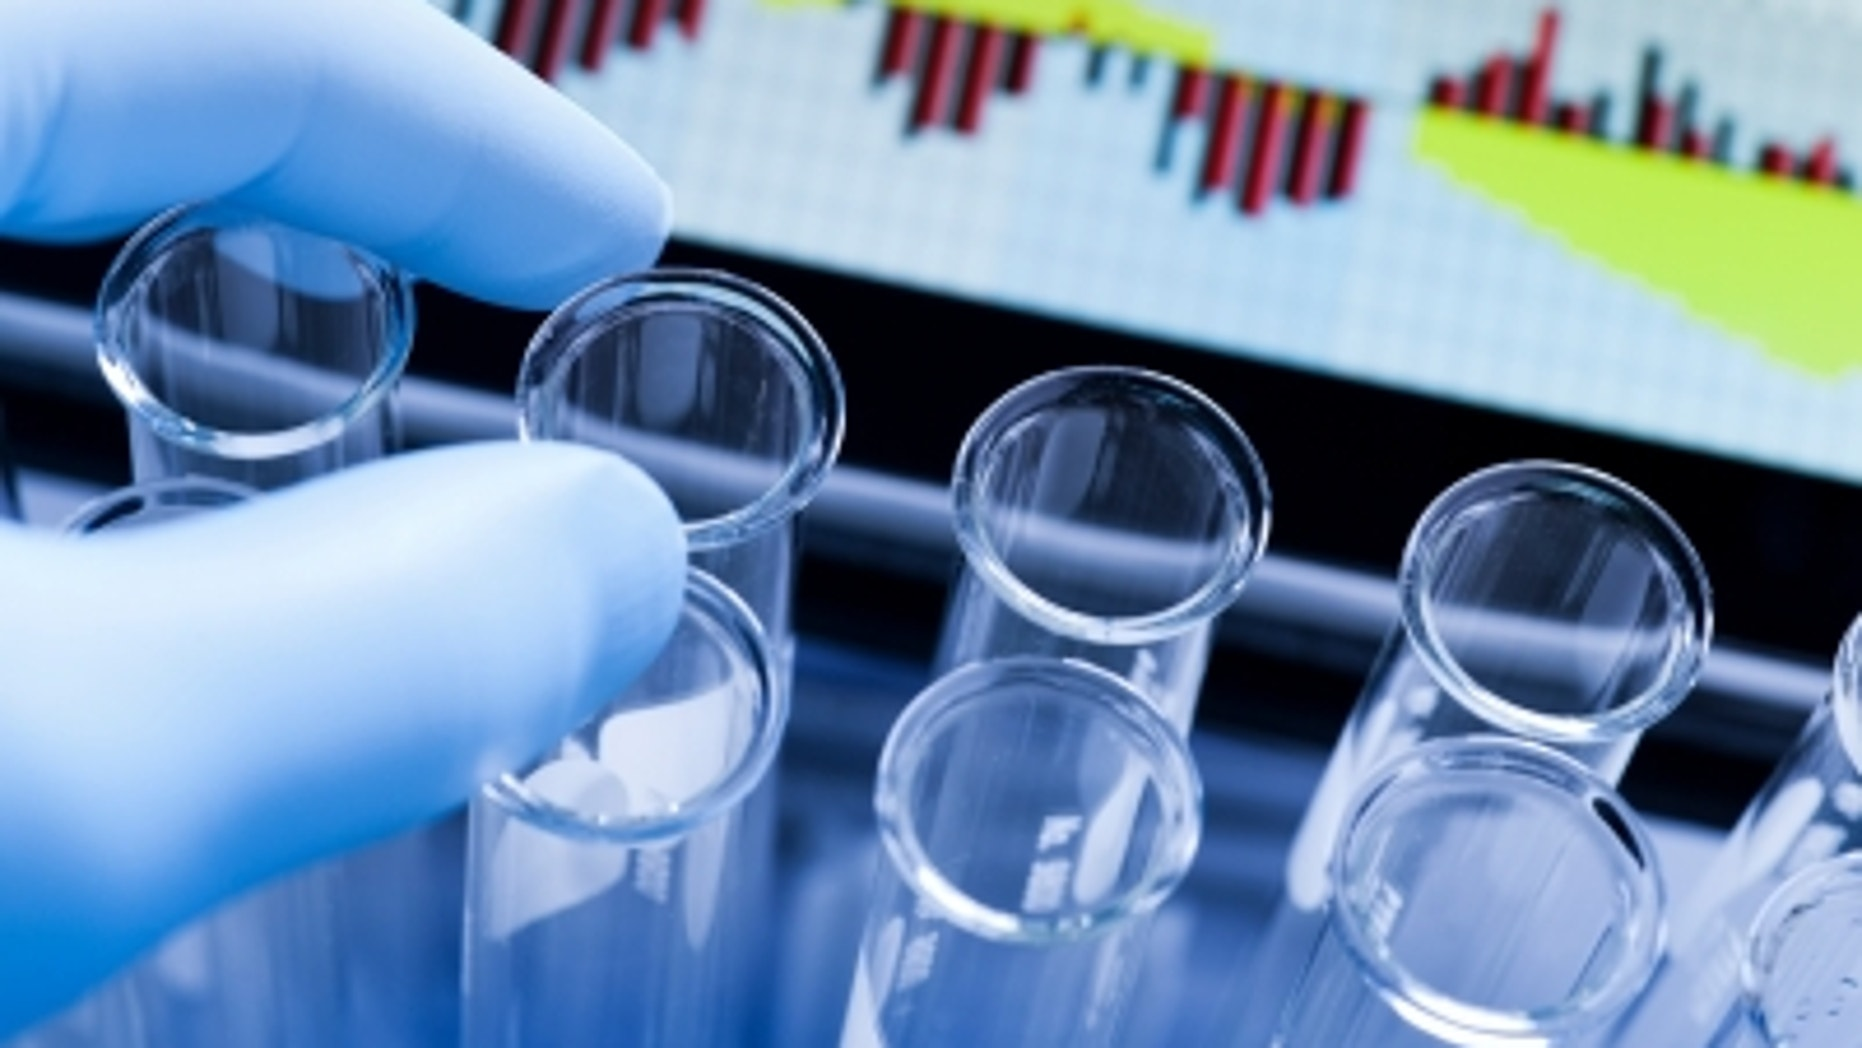 Science and medical research sample analysis